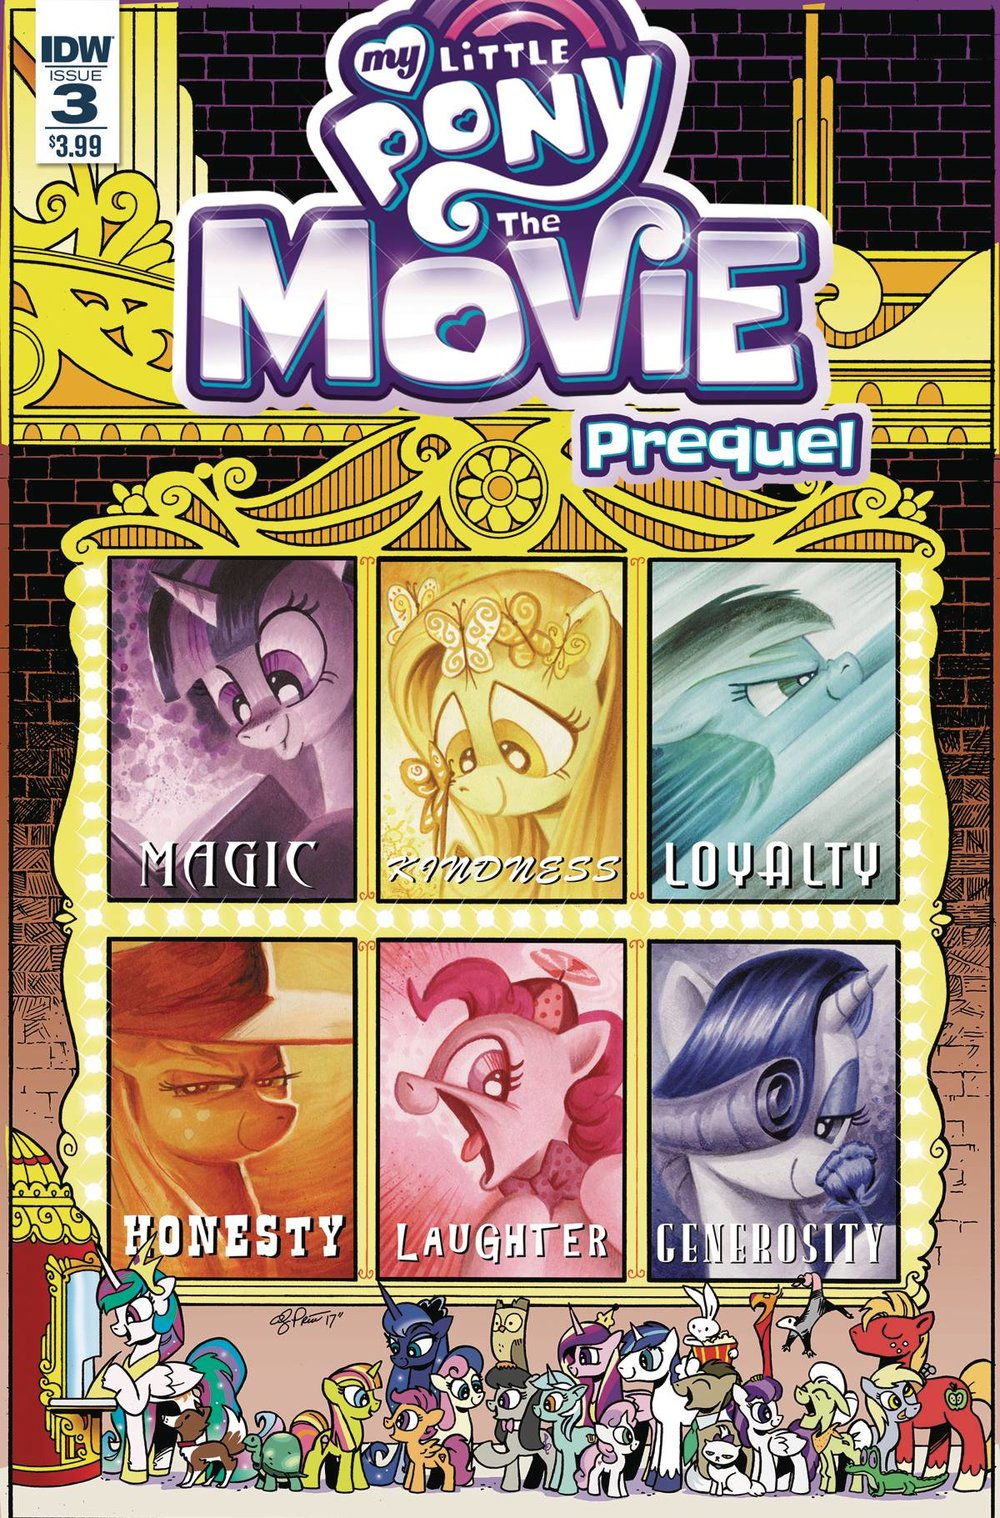 MY LITTLE PONY MOVIE PREQUEL 3 CVR A PRICE.jpg